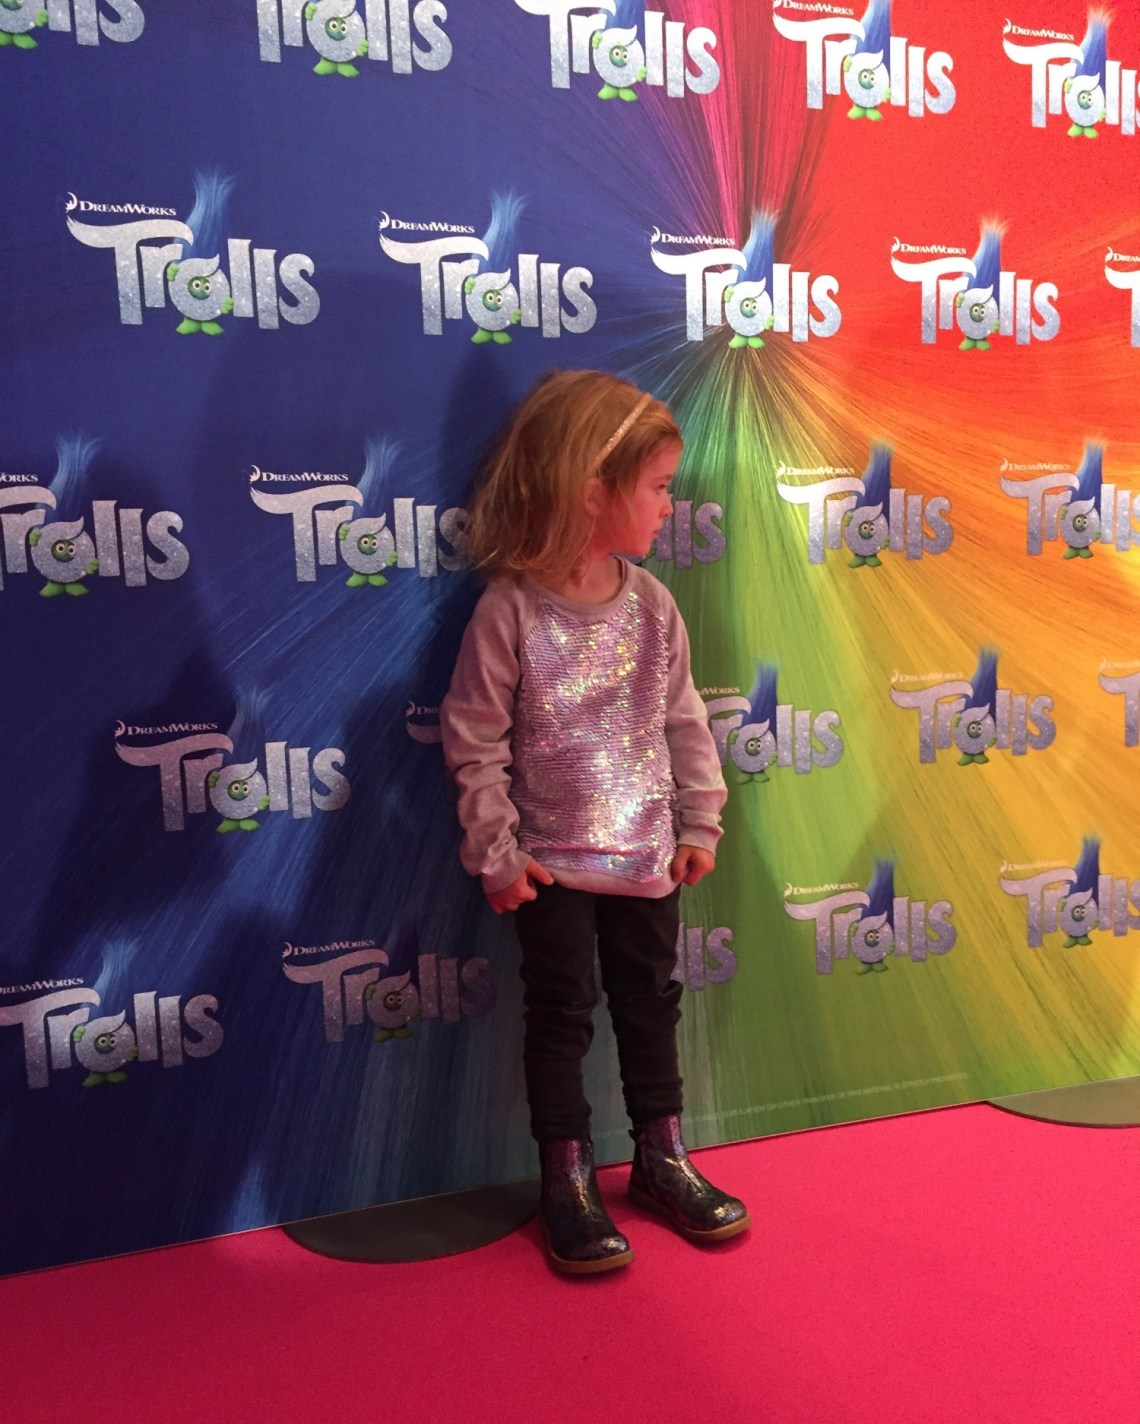 Trolls Gallapræmiere - Ongoingyoungster